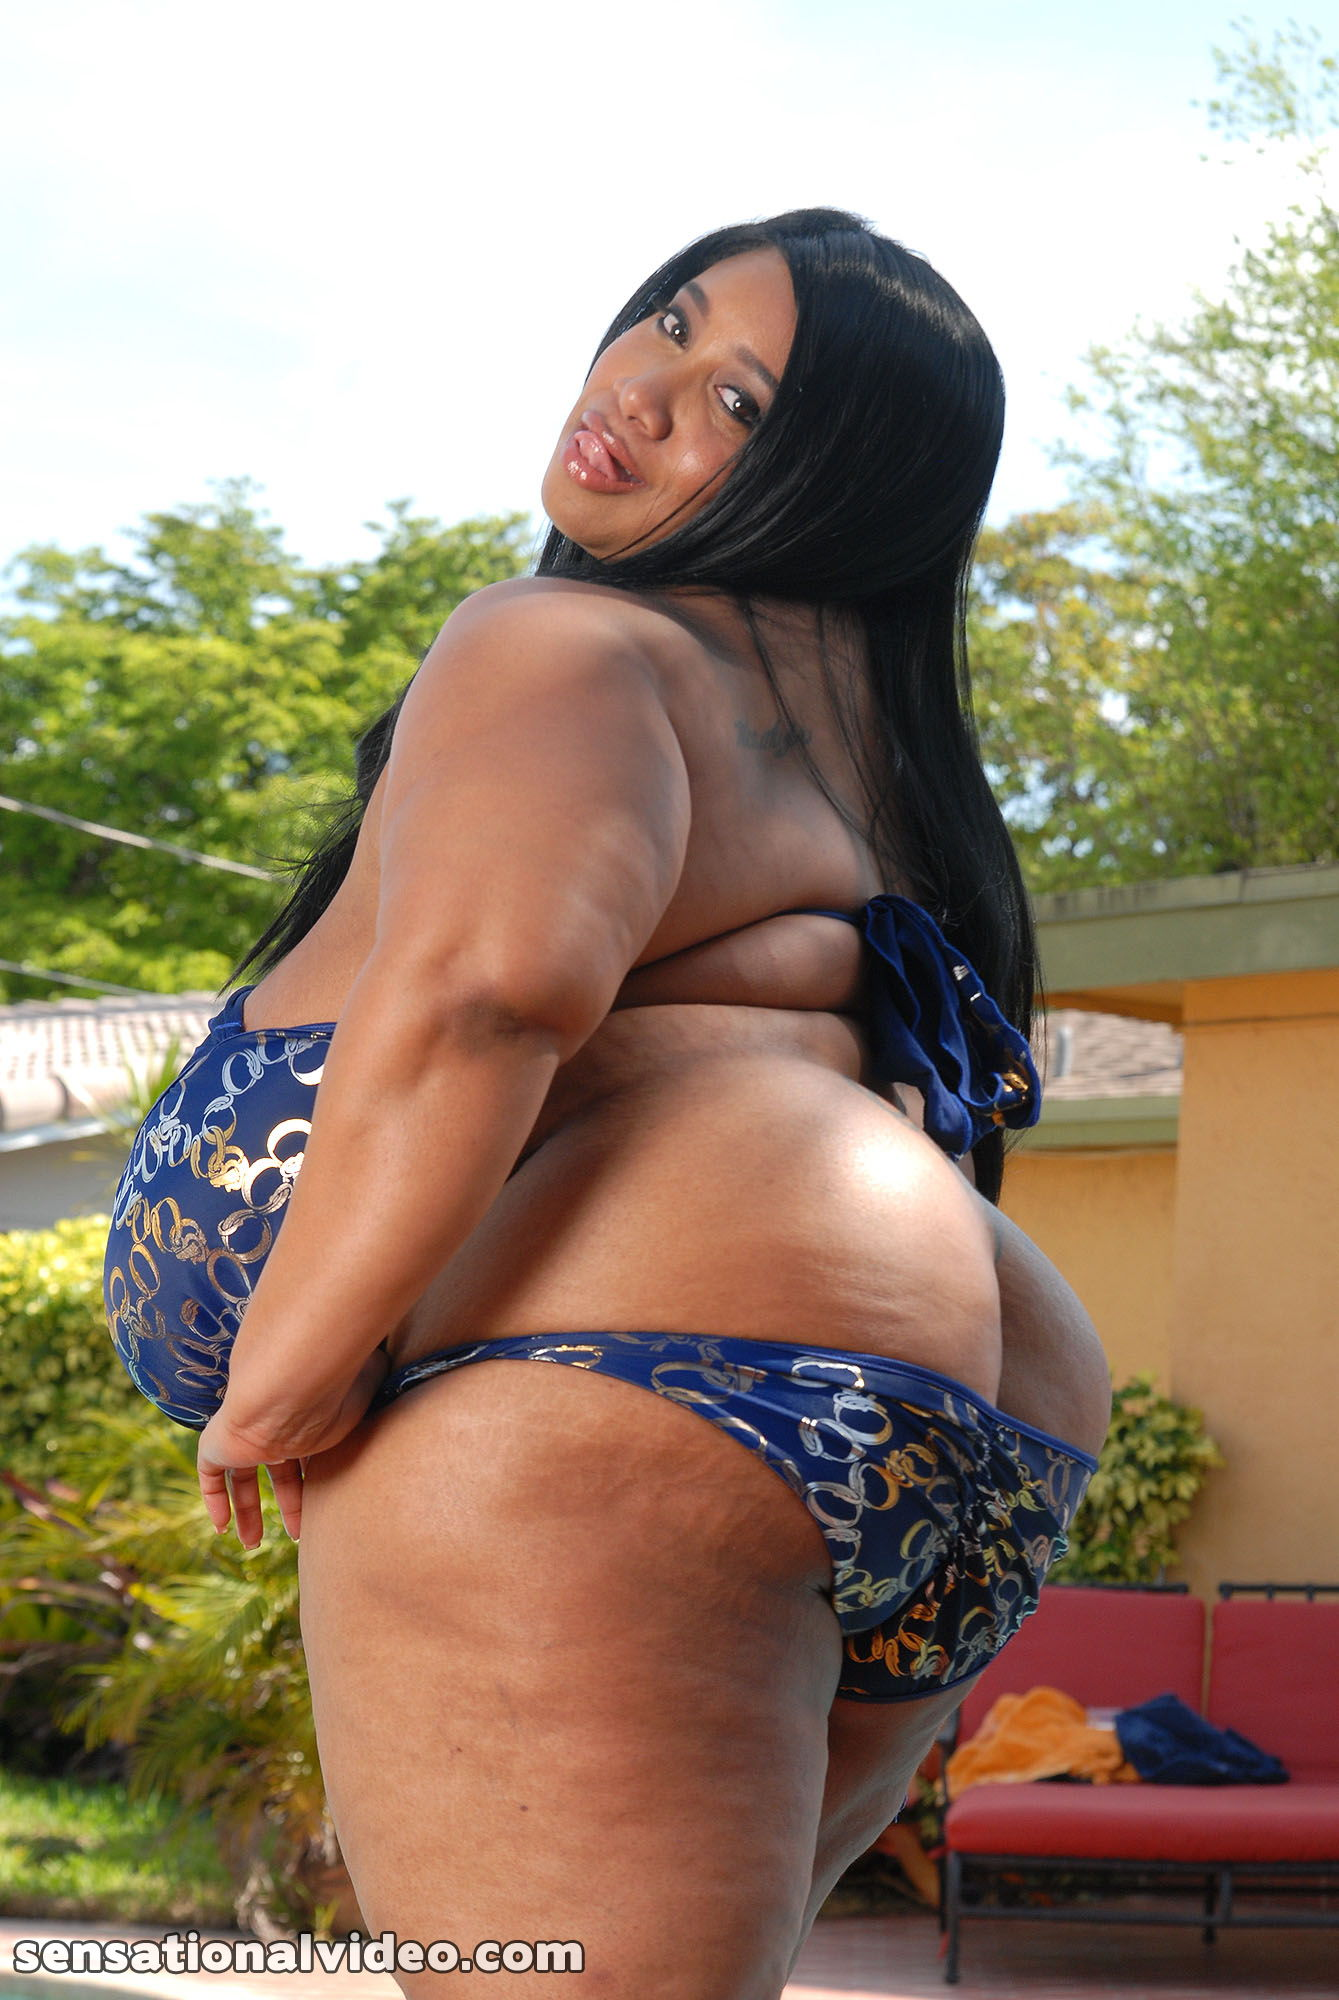 lesgalls spicytitties plumperpass gal705 pic 13